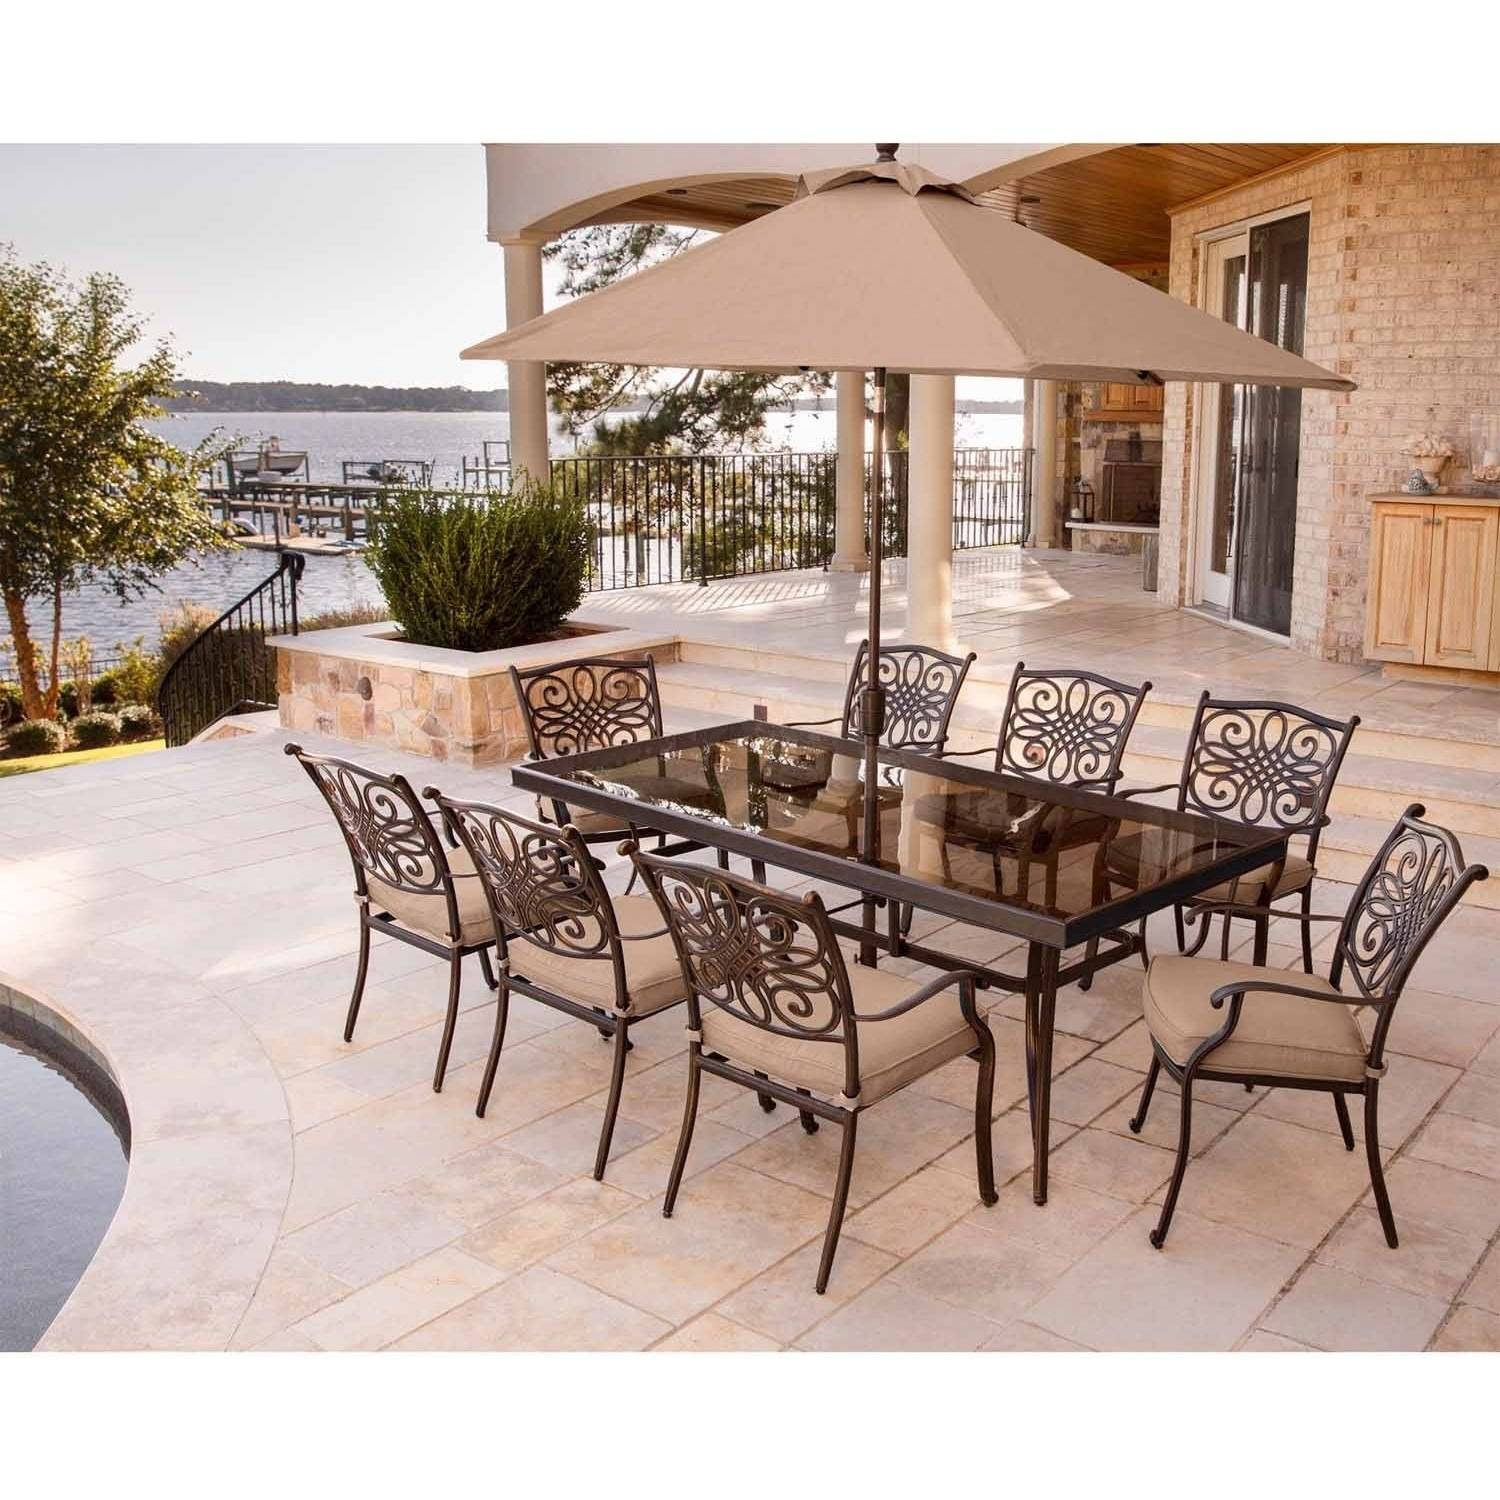 """Hanover Outdoor Traditions 9-Piece Dining Set with 42"""" x 84"""" Glass-Top Table, 8 Stationary Chairs and Umbrella with Stand, Natural Oat"""